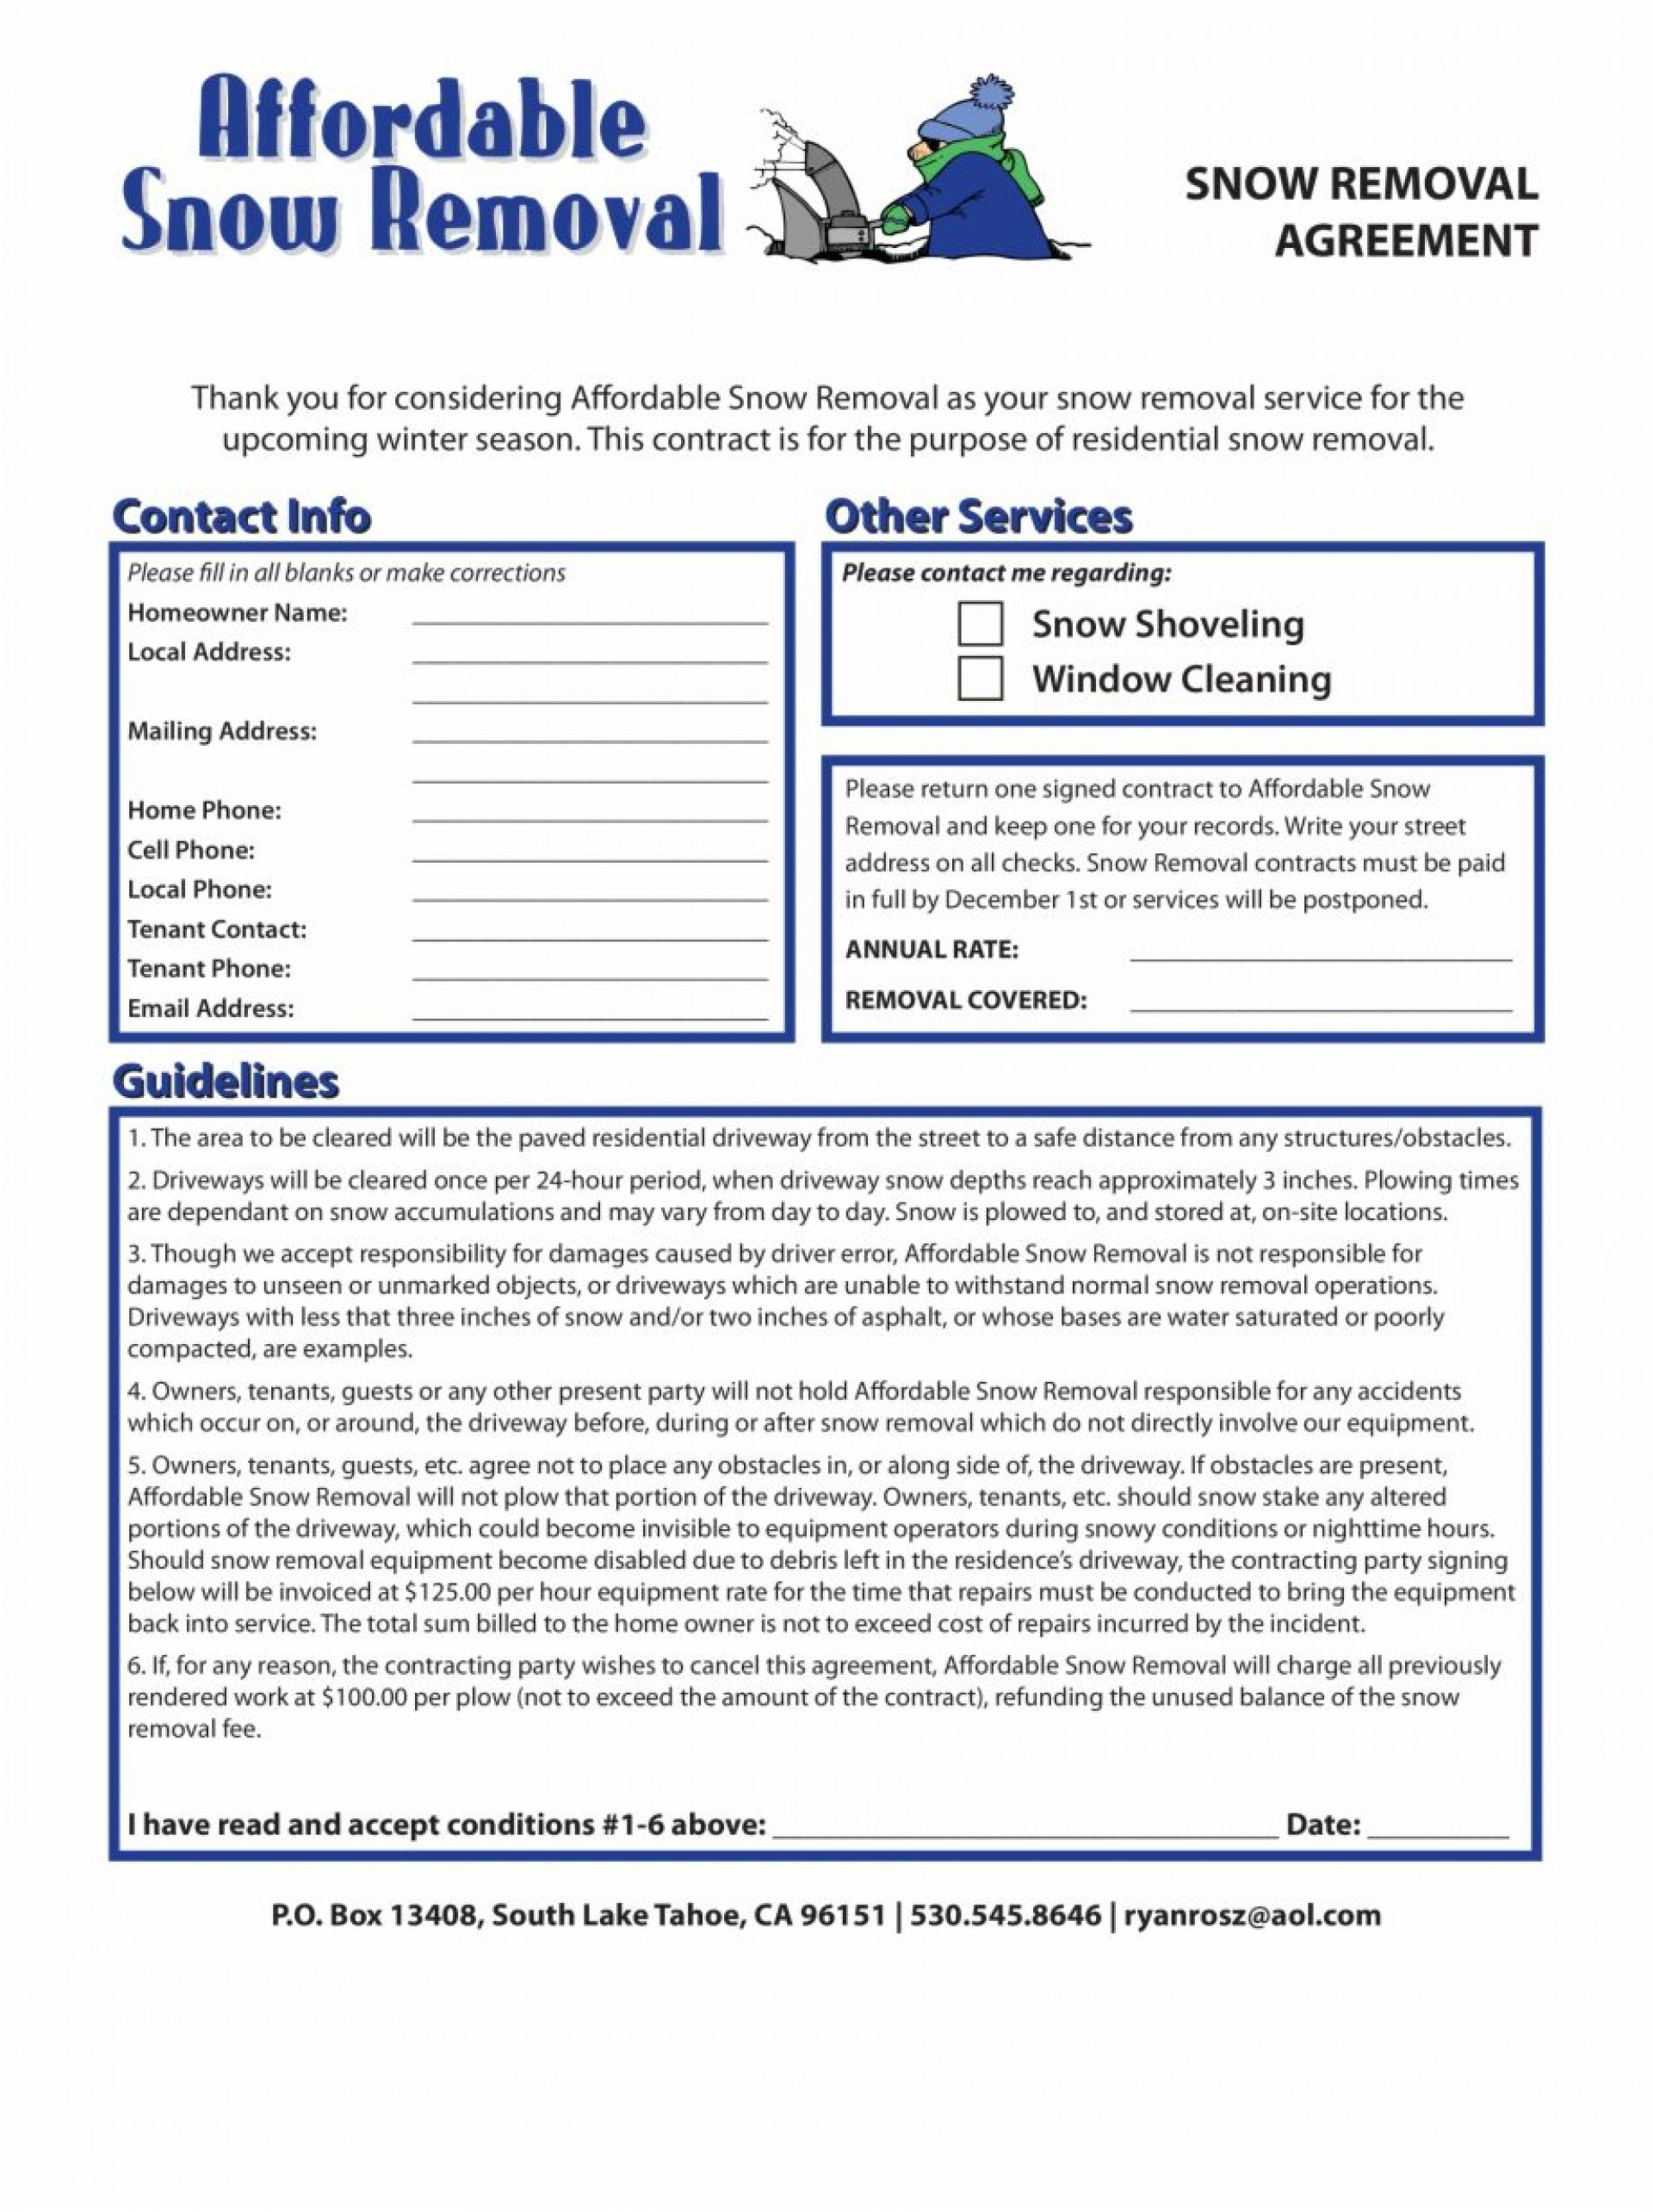 001 Phenomenal Snow Removal Contract Template Sample  Templates Free Printable Simple Seasonal Plow Agreement1920